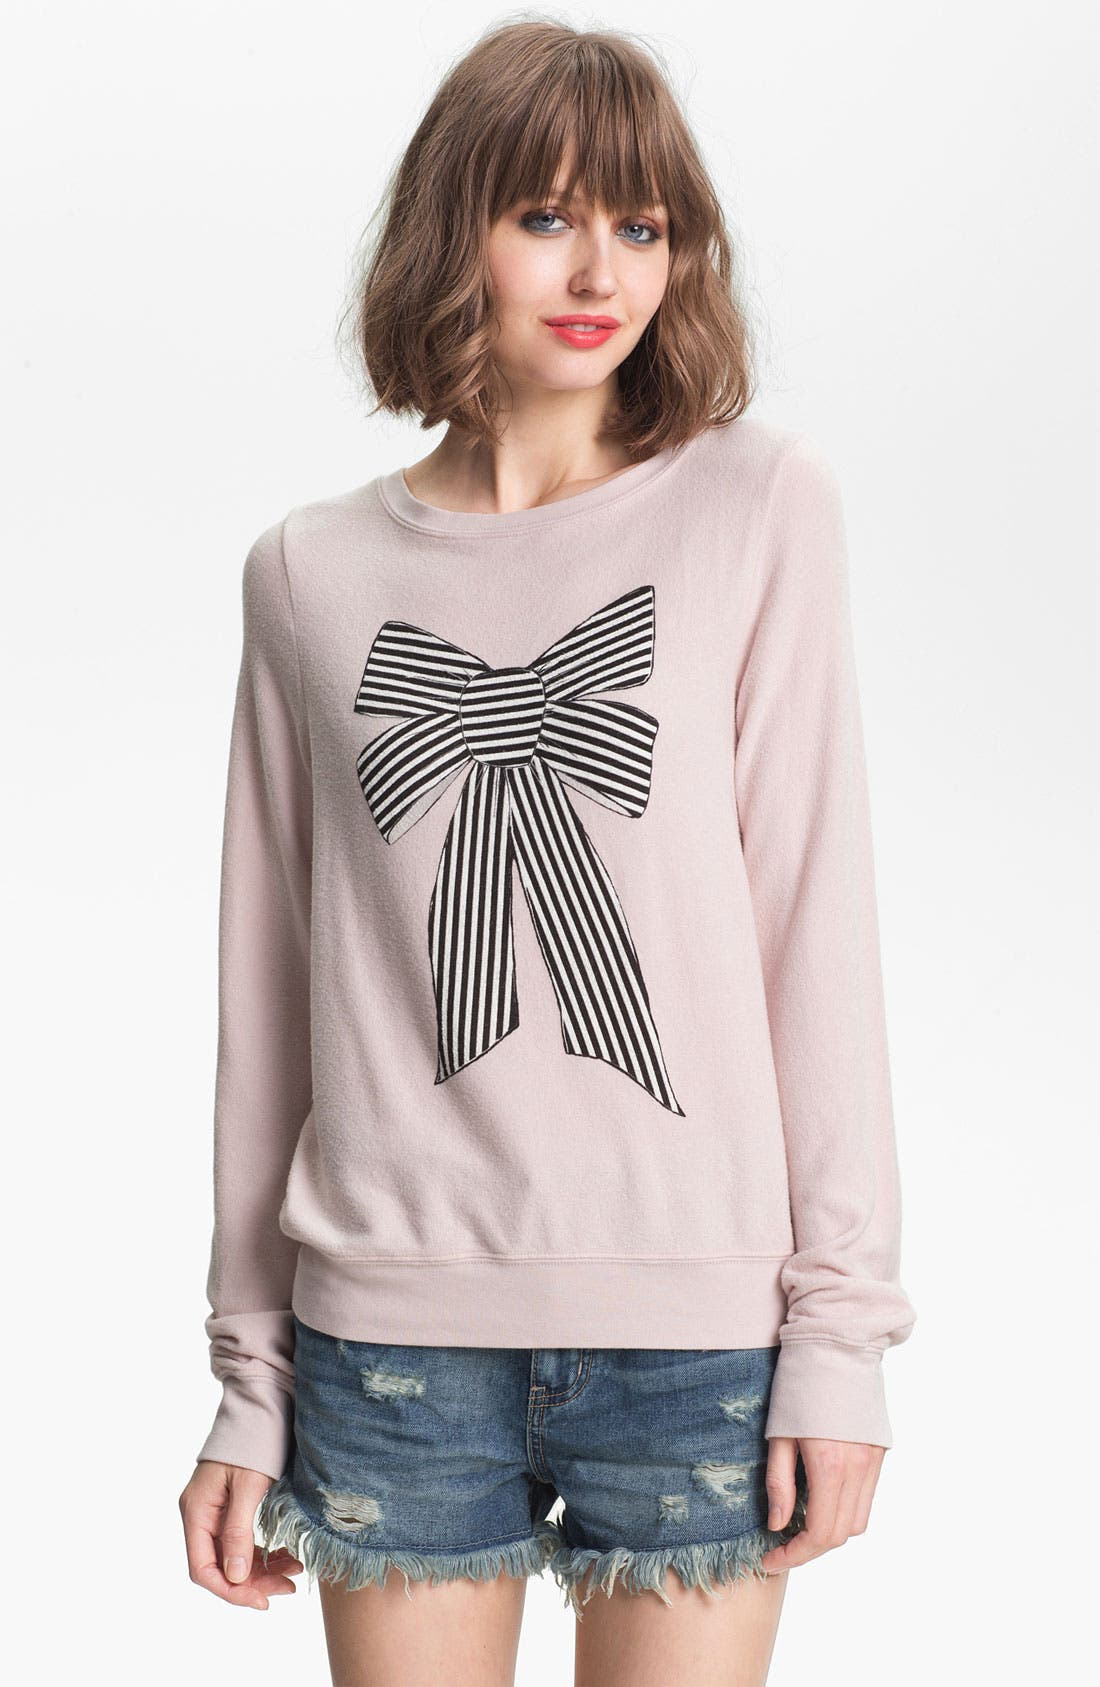 Main Image - Wildfox 'Coco' Graphic Sweatshirt (Nordstrom Exclusive)